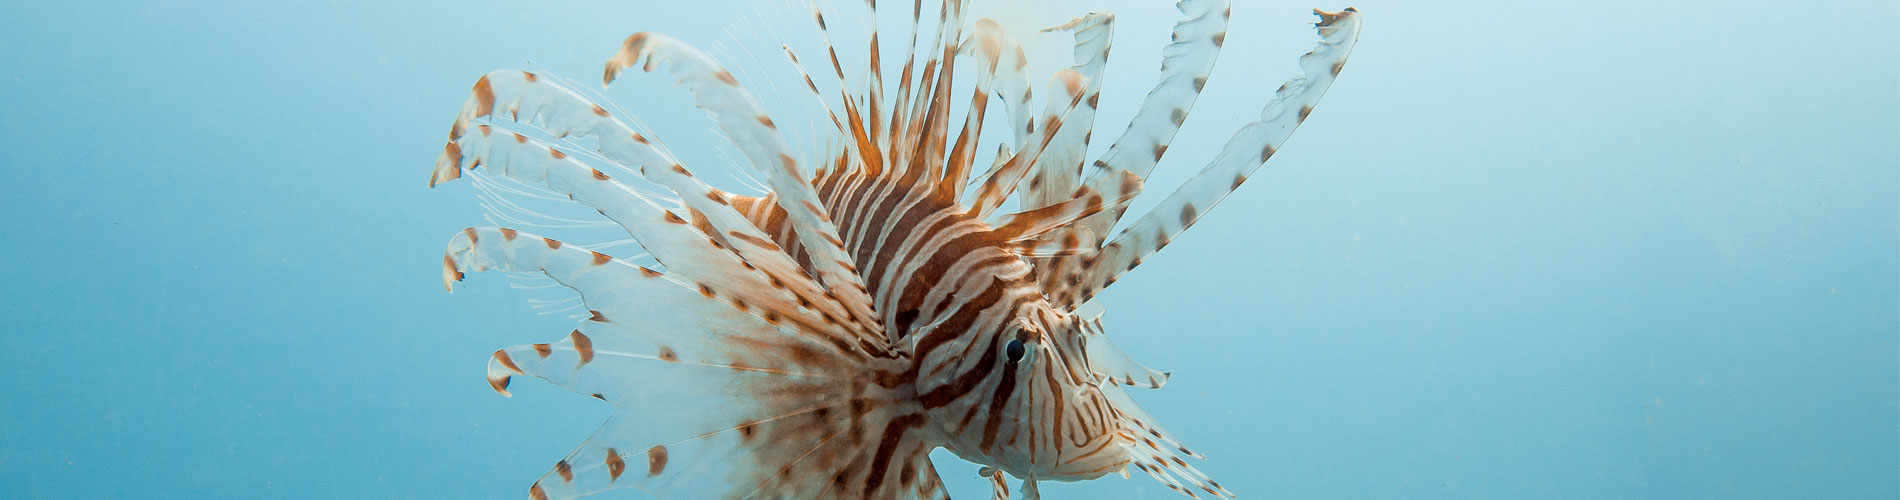 Wishes for Fishes - Lionfish